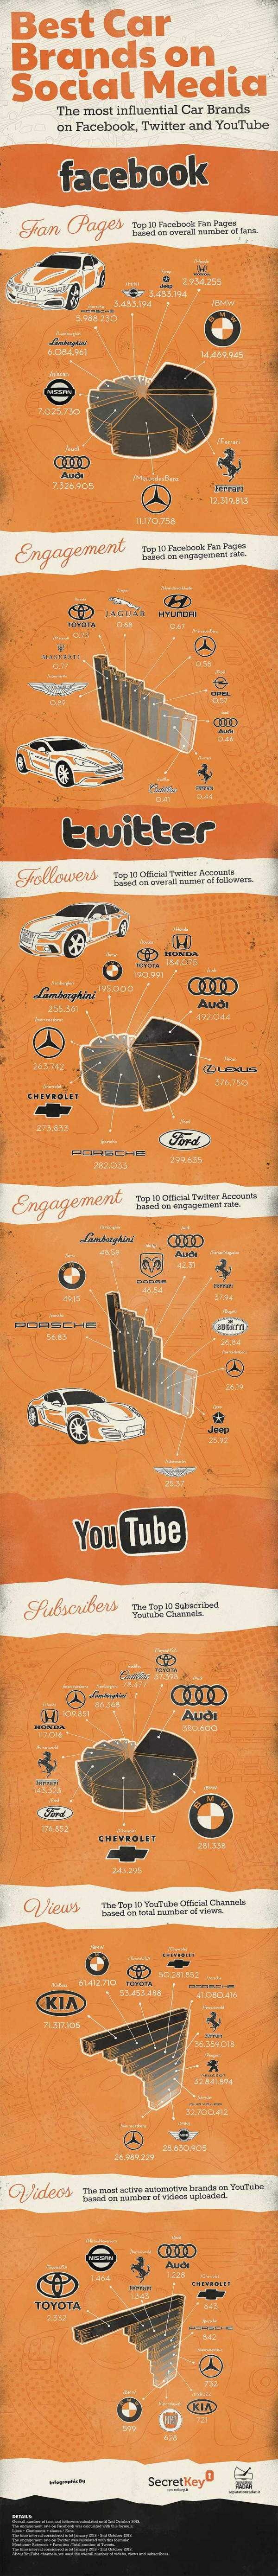 best-car-brands-on-social-media_5264eb64074b0_w1500